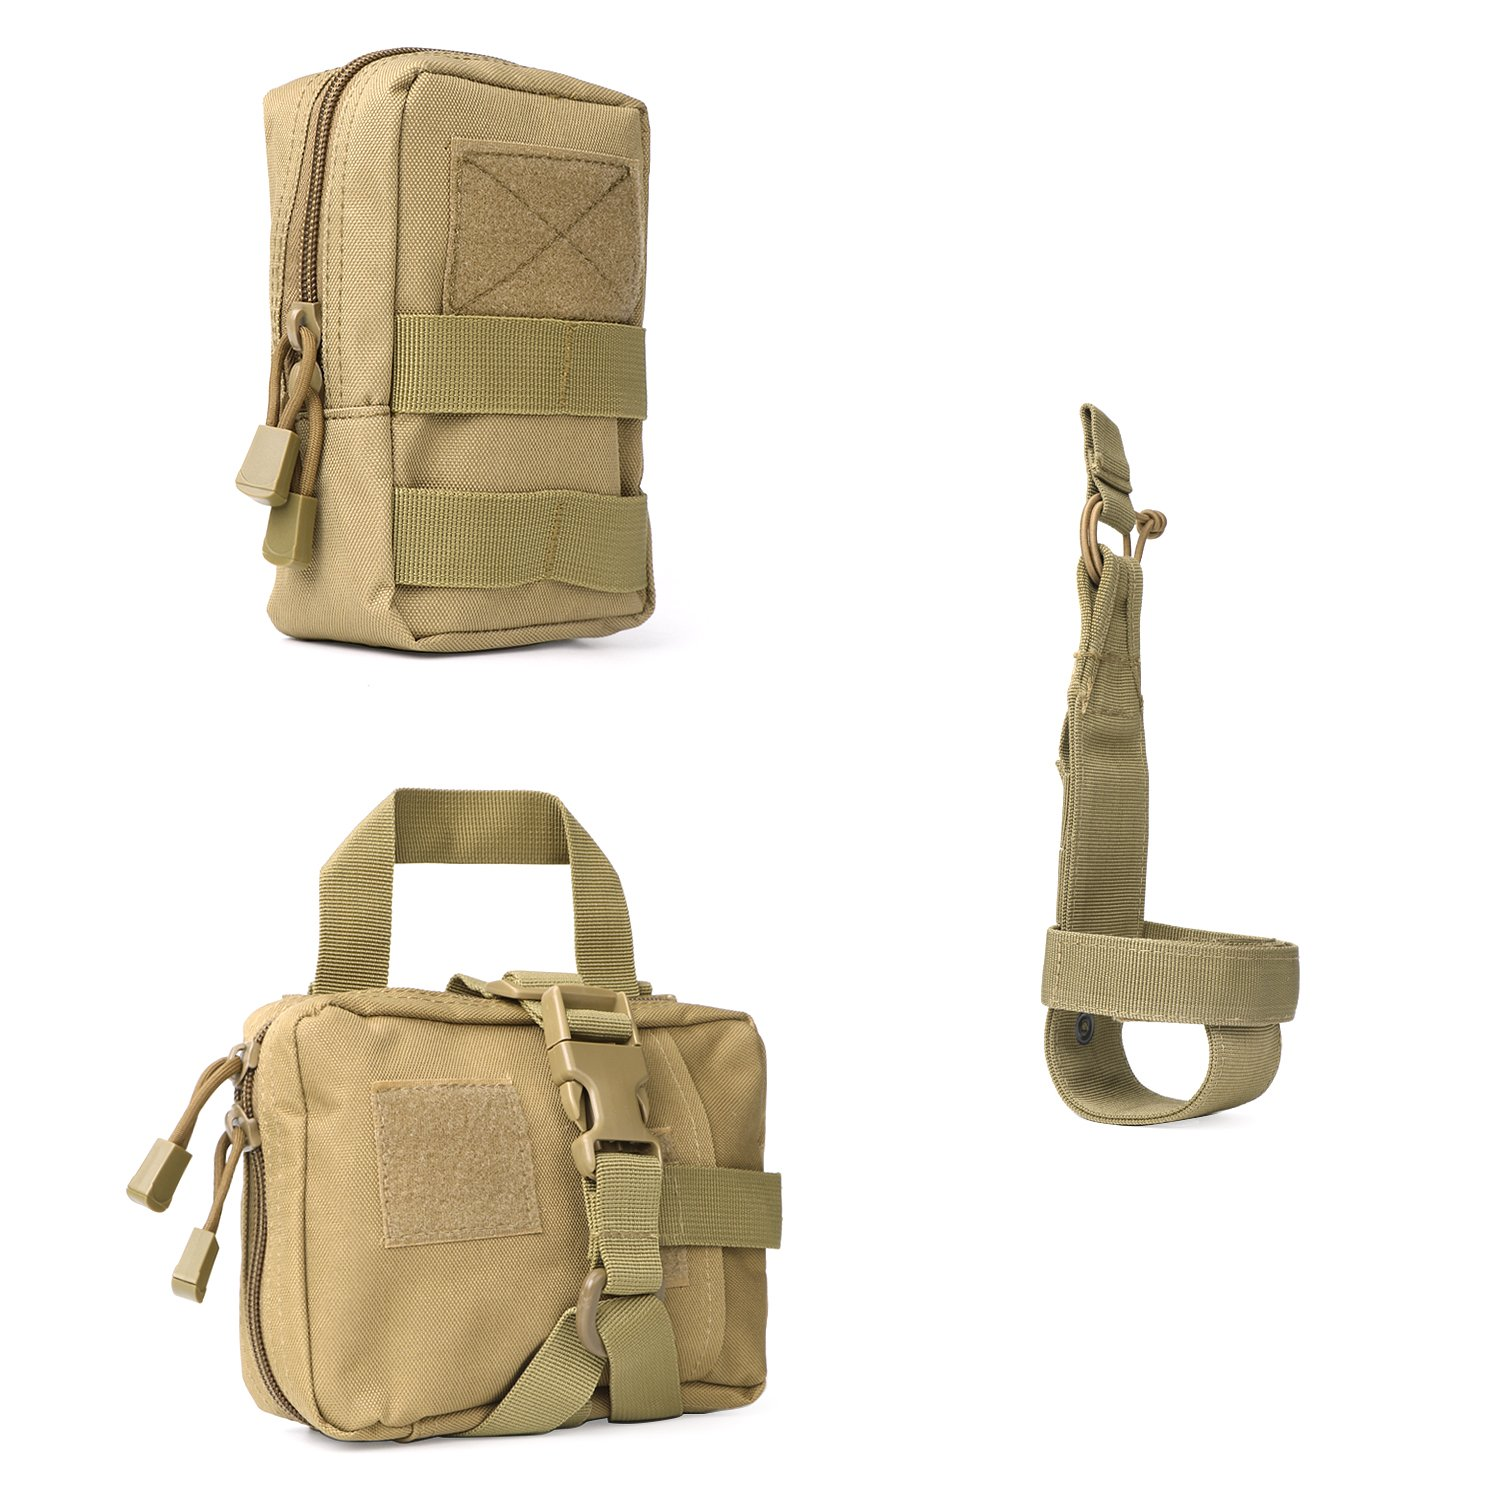 Tactical Molle Pouches Multi-Purpose EDC Military Nylon Waist Pack Utility Bag Detachable Patches/Pouches For Dog Vest Harness